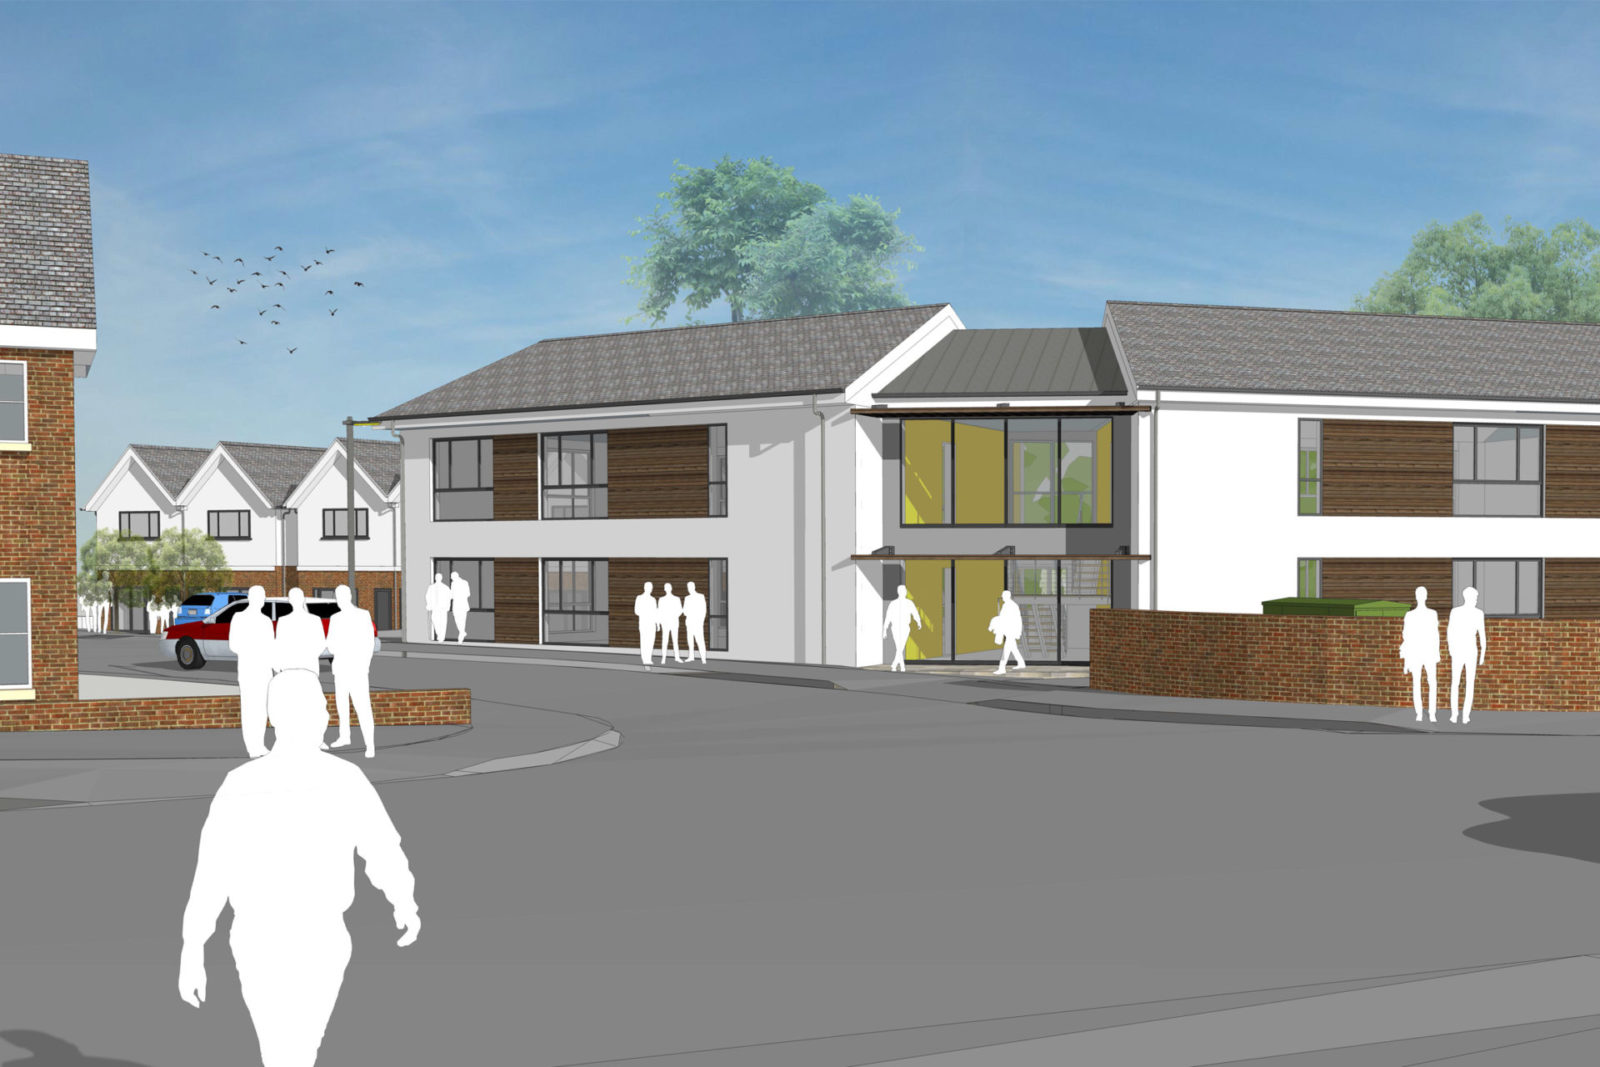 Commercial offices and residential housing at Nellies wood , Totnes submitted for Planning – Rud Sawers Architects, Devon